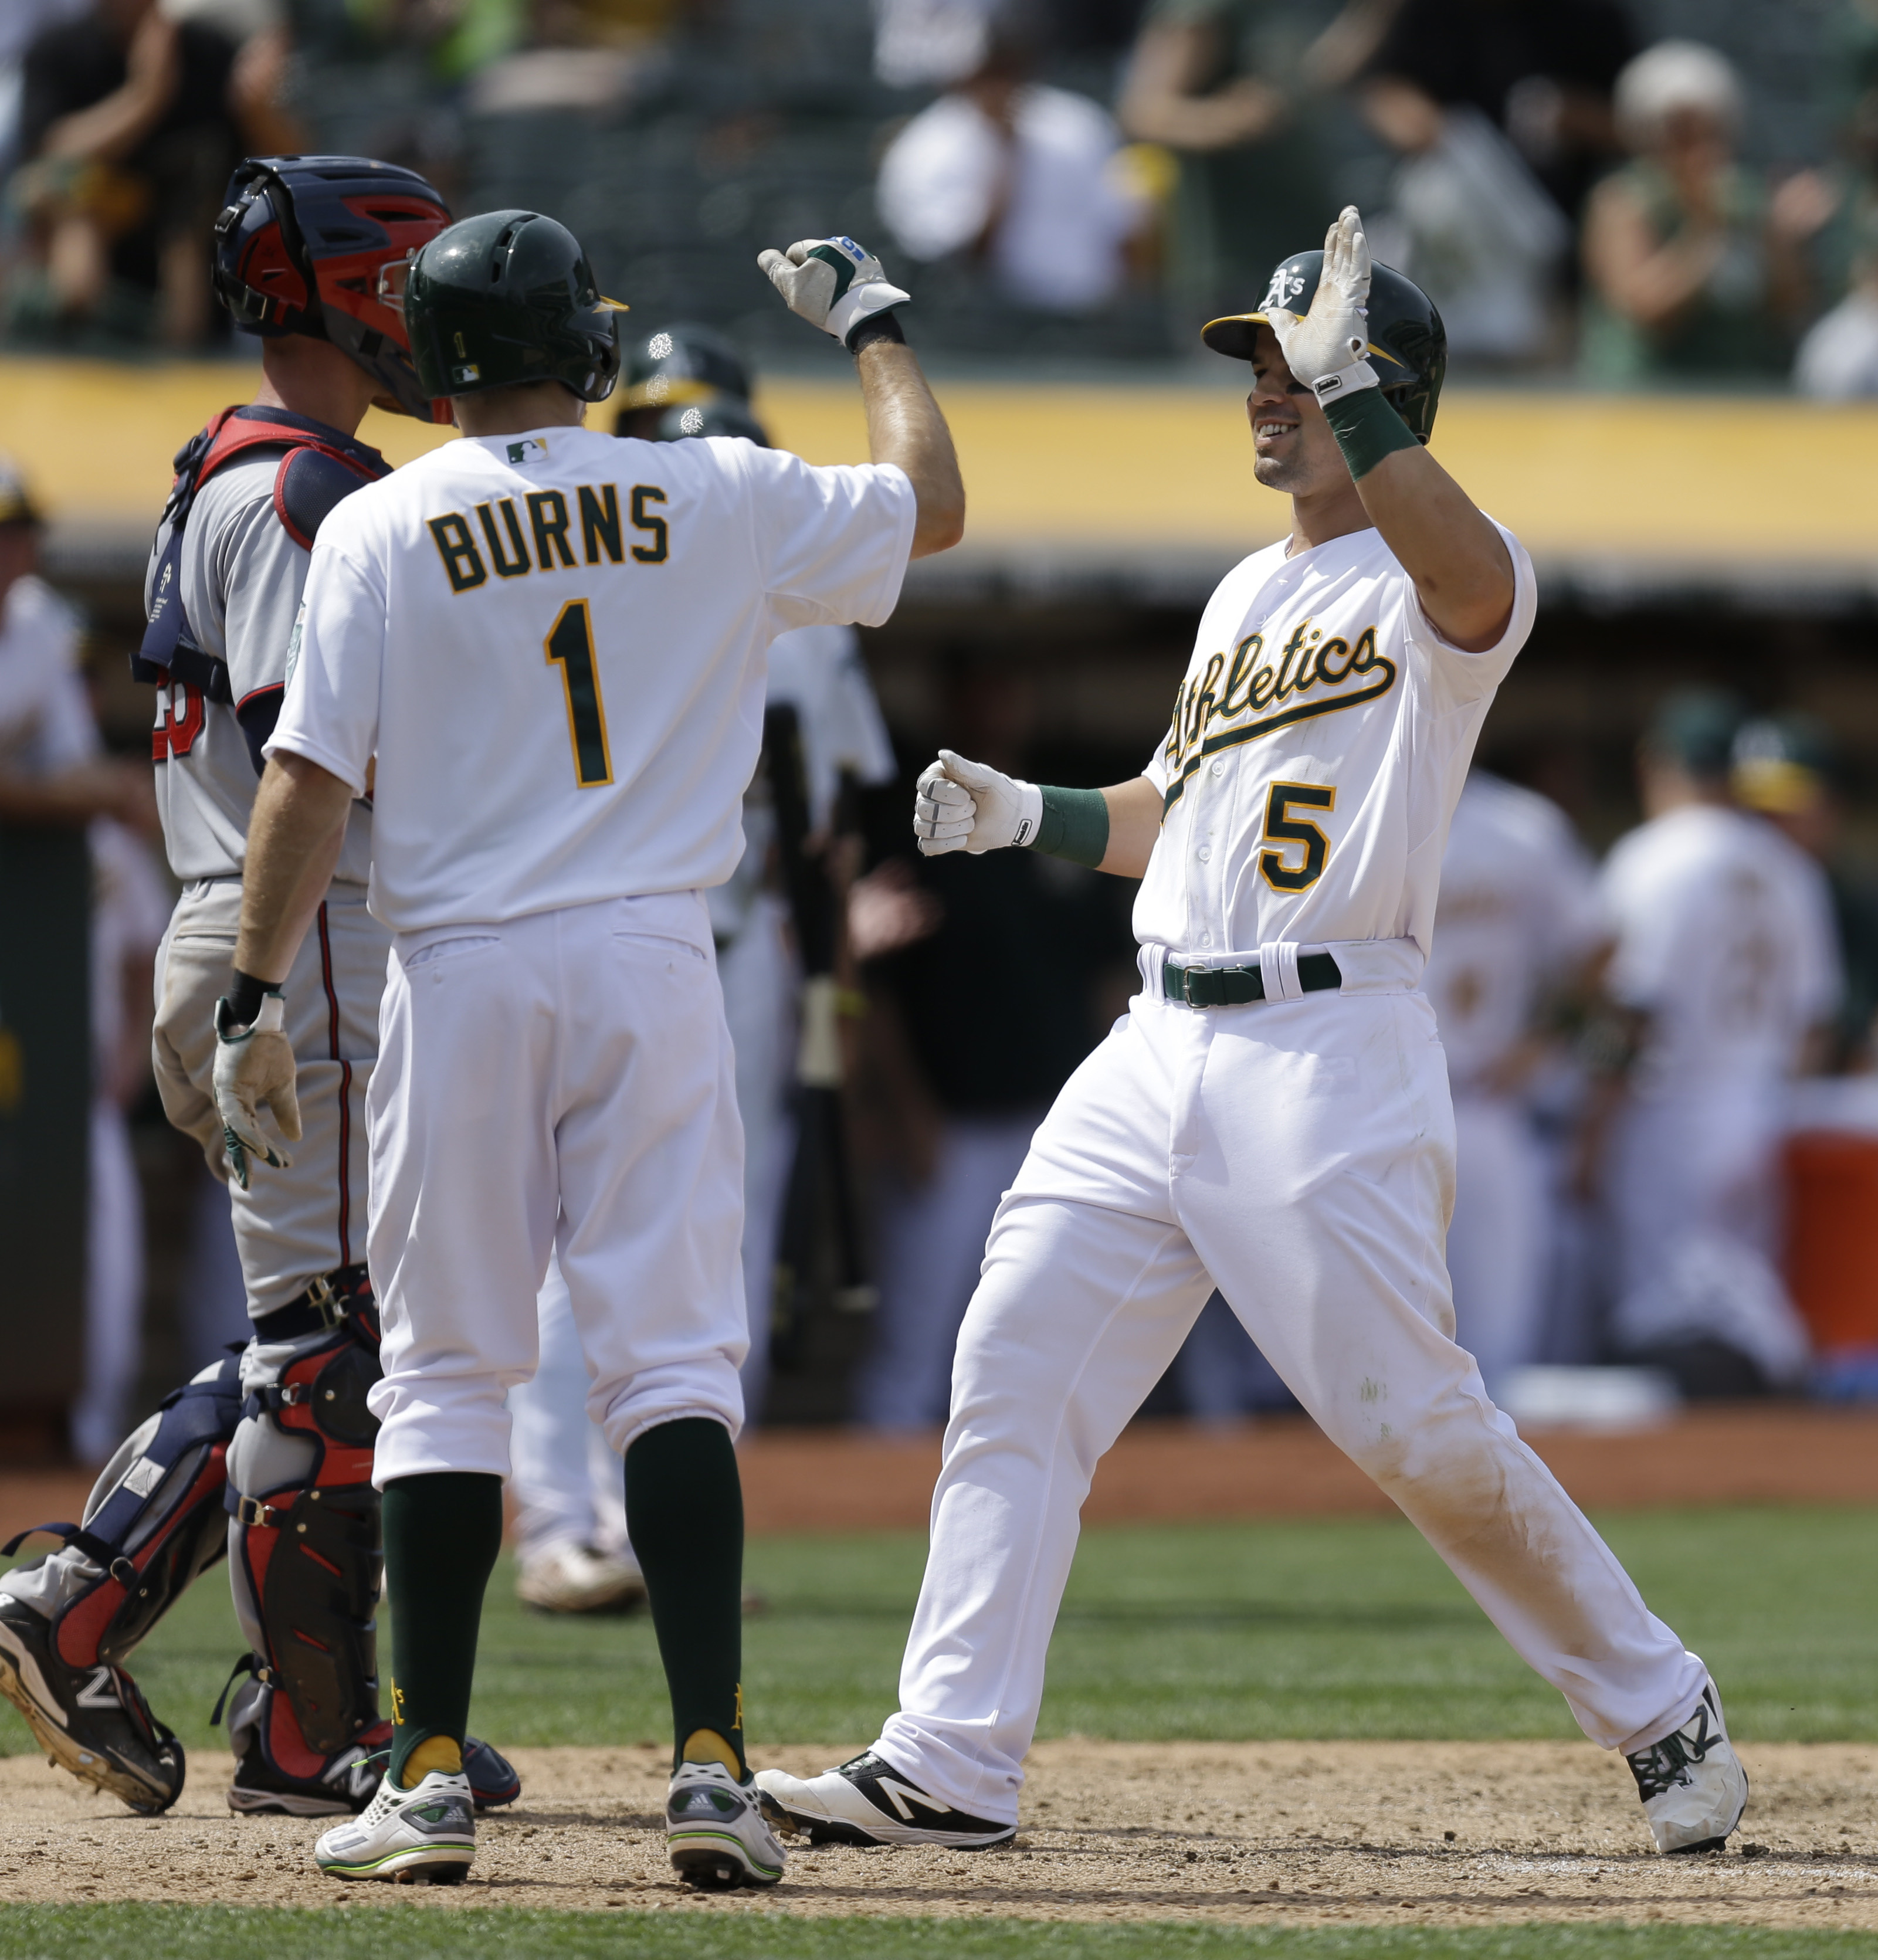 Oakland Athletics' Jake Smolinski, right, is congratulated by Billy Burns (1) after hitting a three-run home run off Minnesota Twins' Trevor May in the eighth inning of a baseball game Sunday, July 19, 2015, in Oakland, Calif. (AP Photo/Ben Margot)